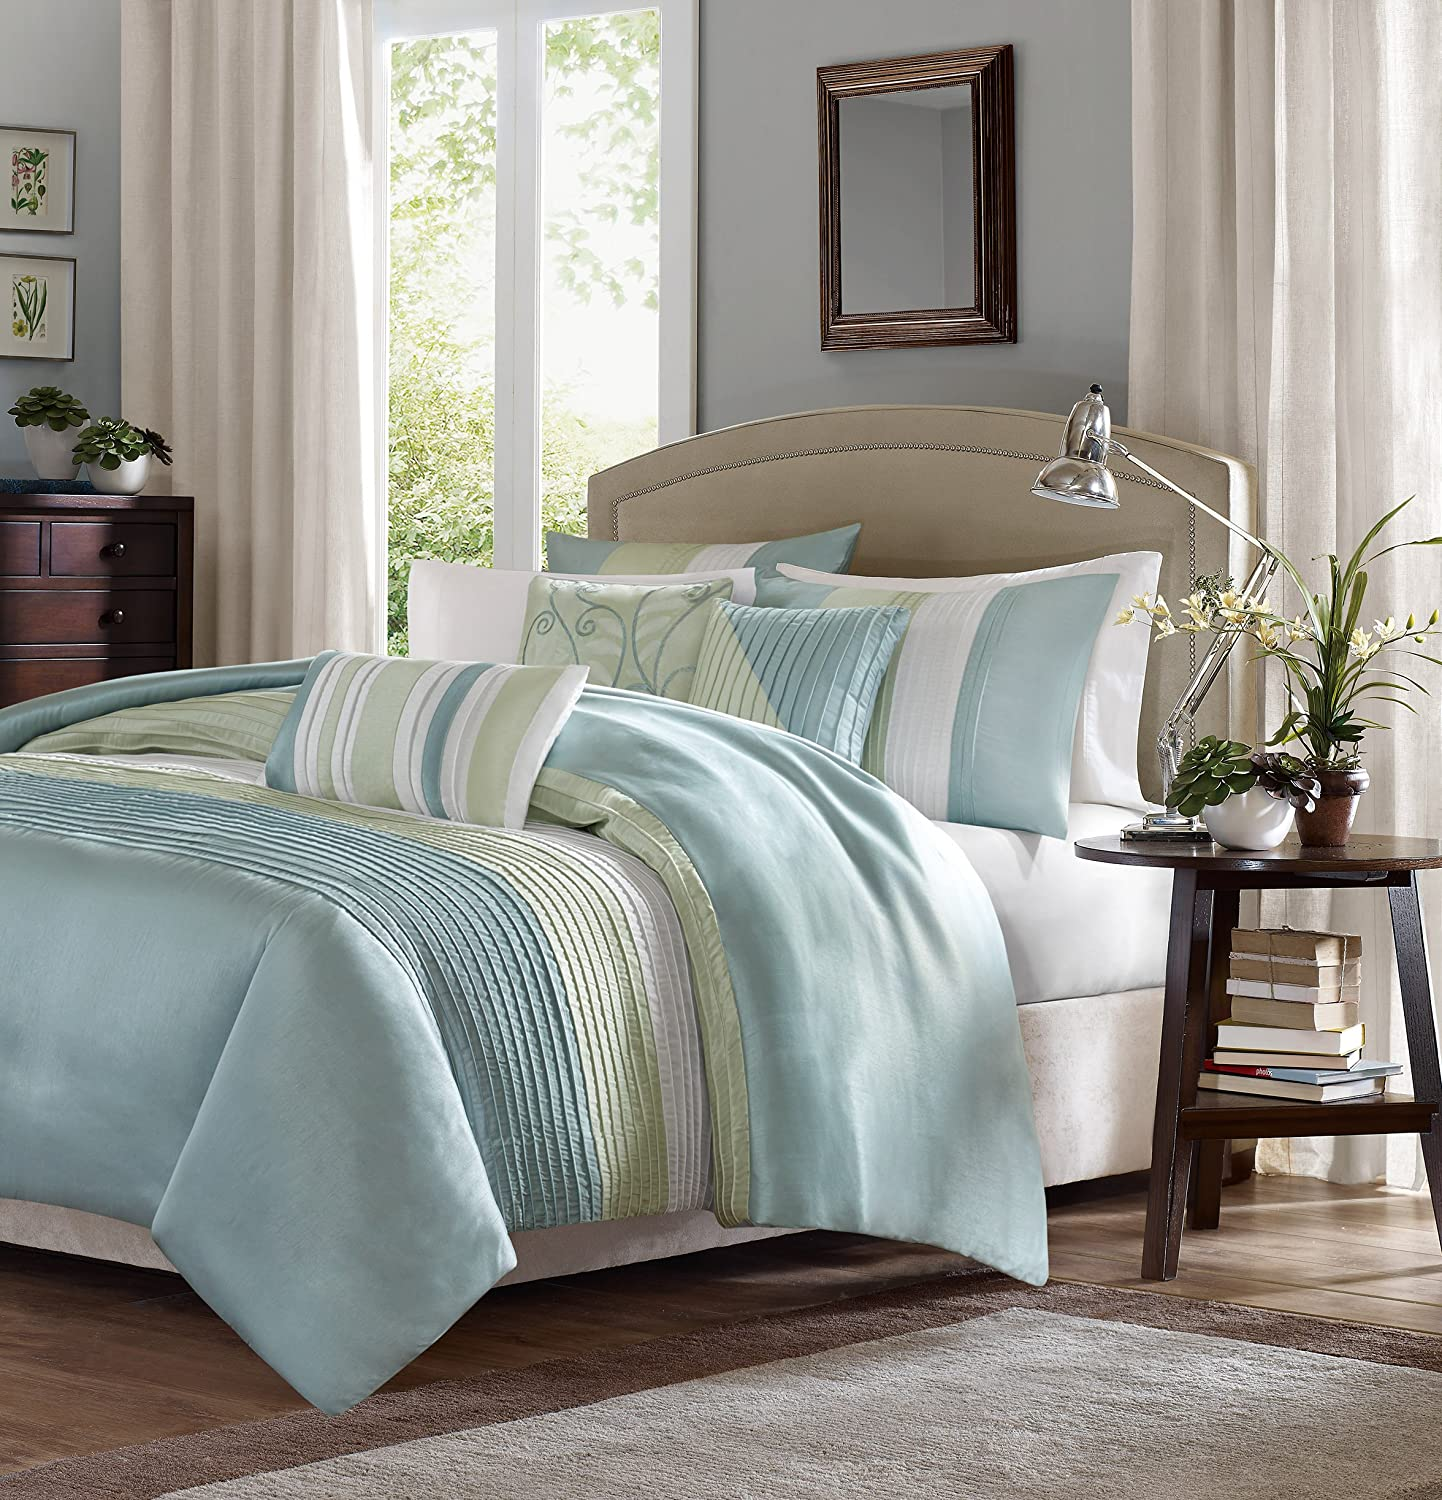 Green bedding set - Amazon Com Madison Park Amherst 6 Piece Duvet Set King Green Home Kitchen